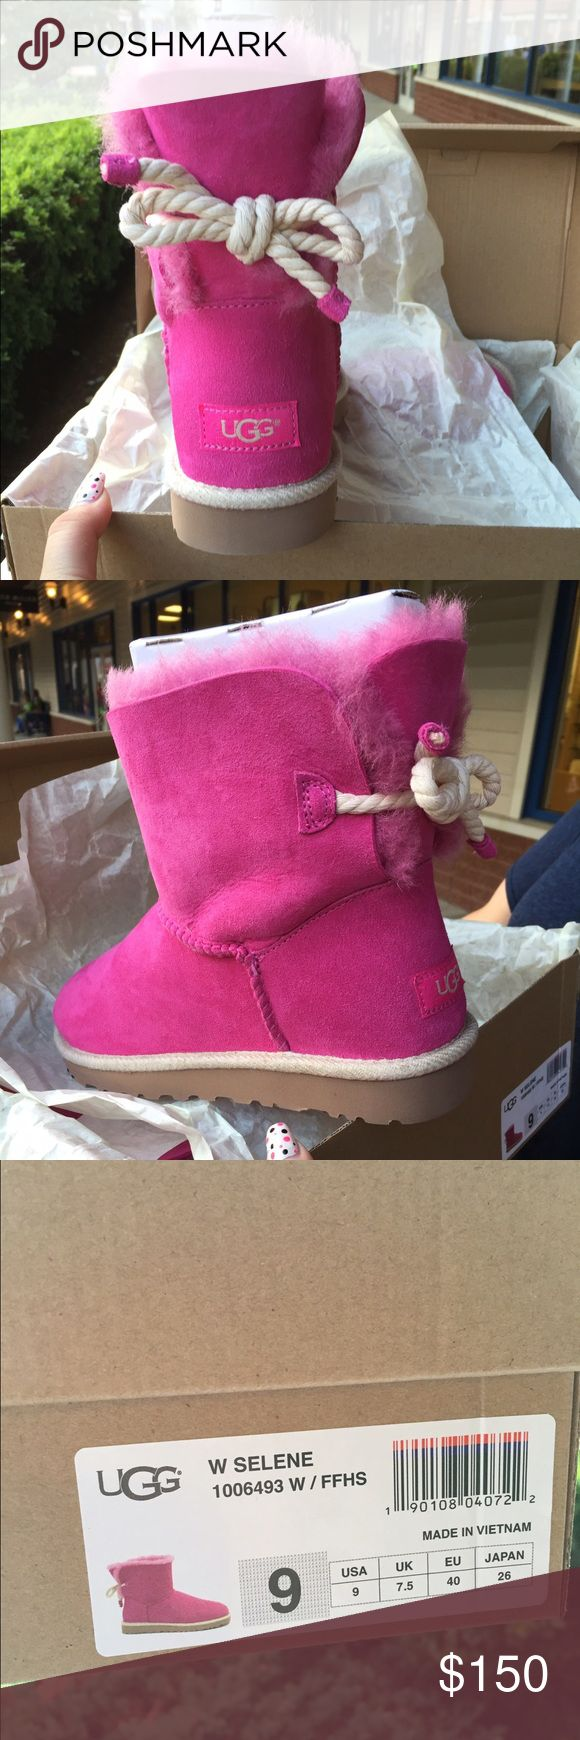 Uggs with rope bow Wicked cute pink uggs with rope bow, remind me of something nautical.  Will consider all offers! UGG Shoes Ankle Boots & Booties